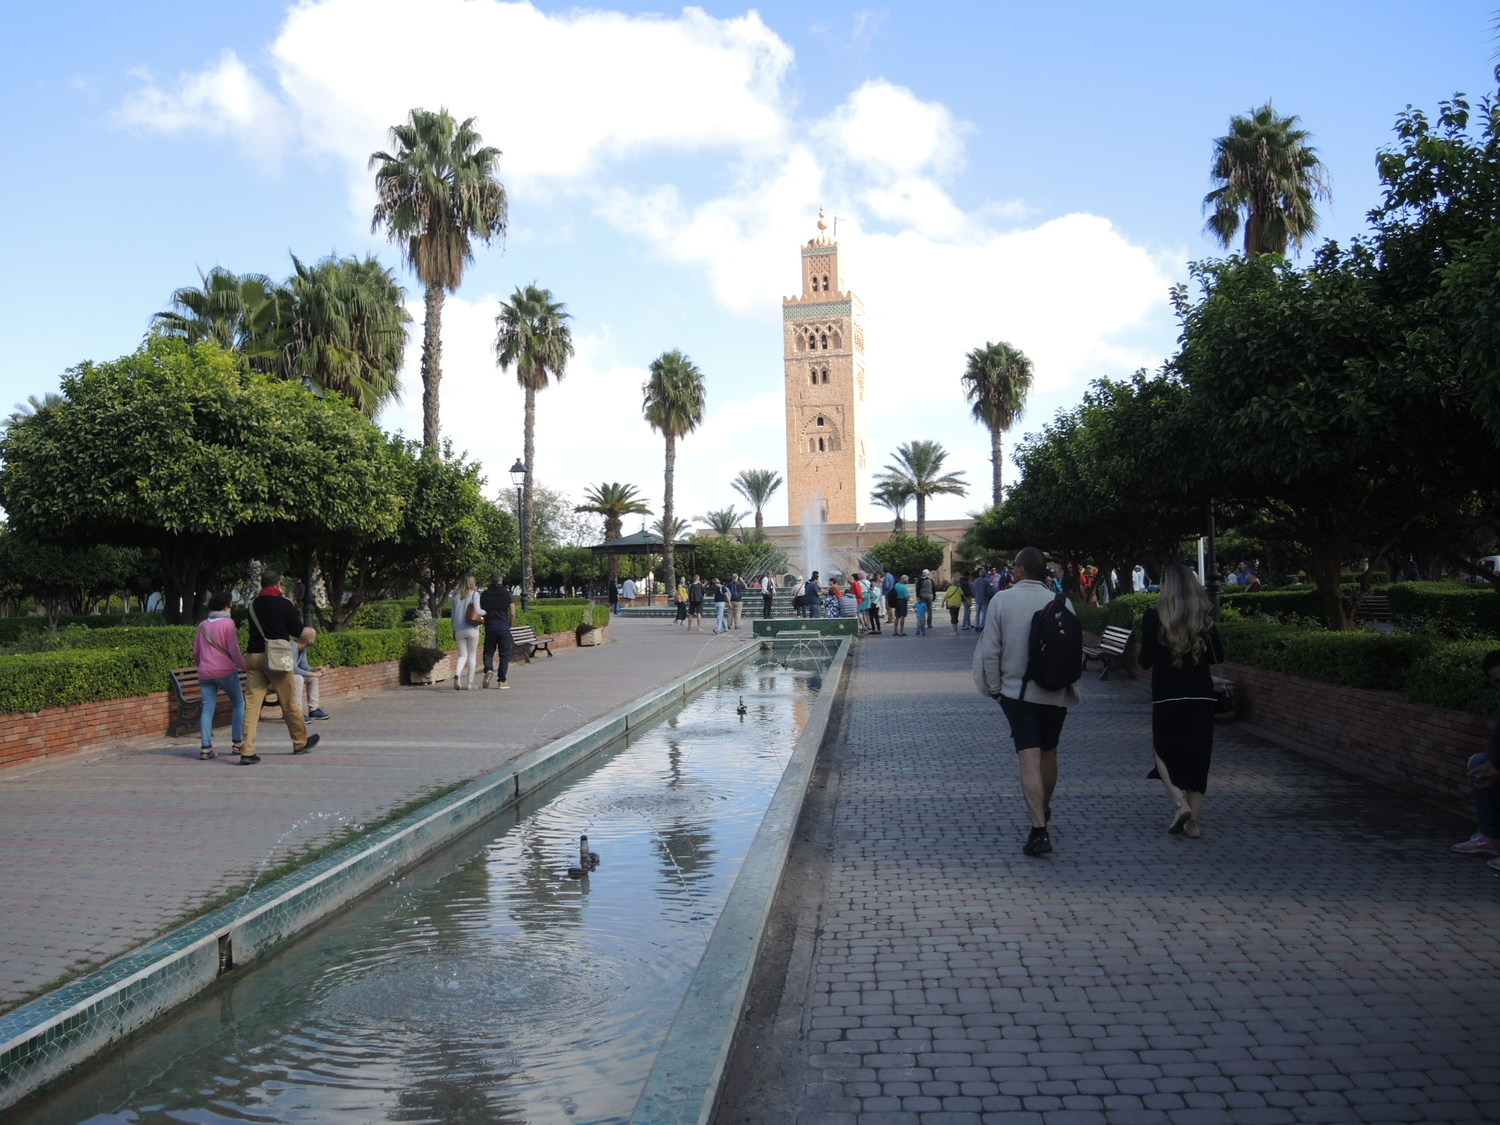 El Koutoubia mosque in Marrakech